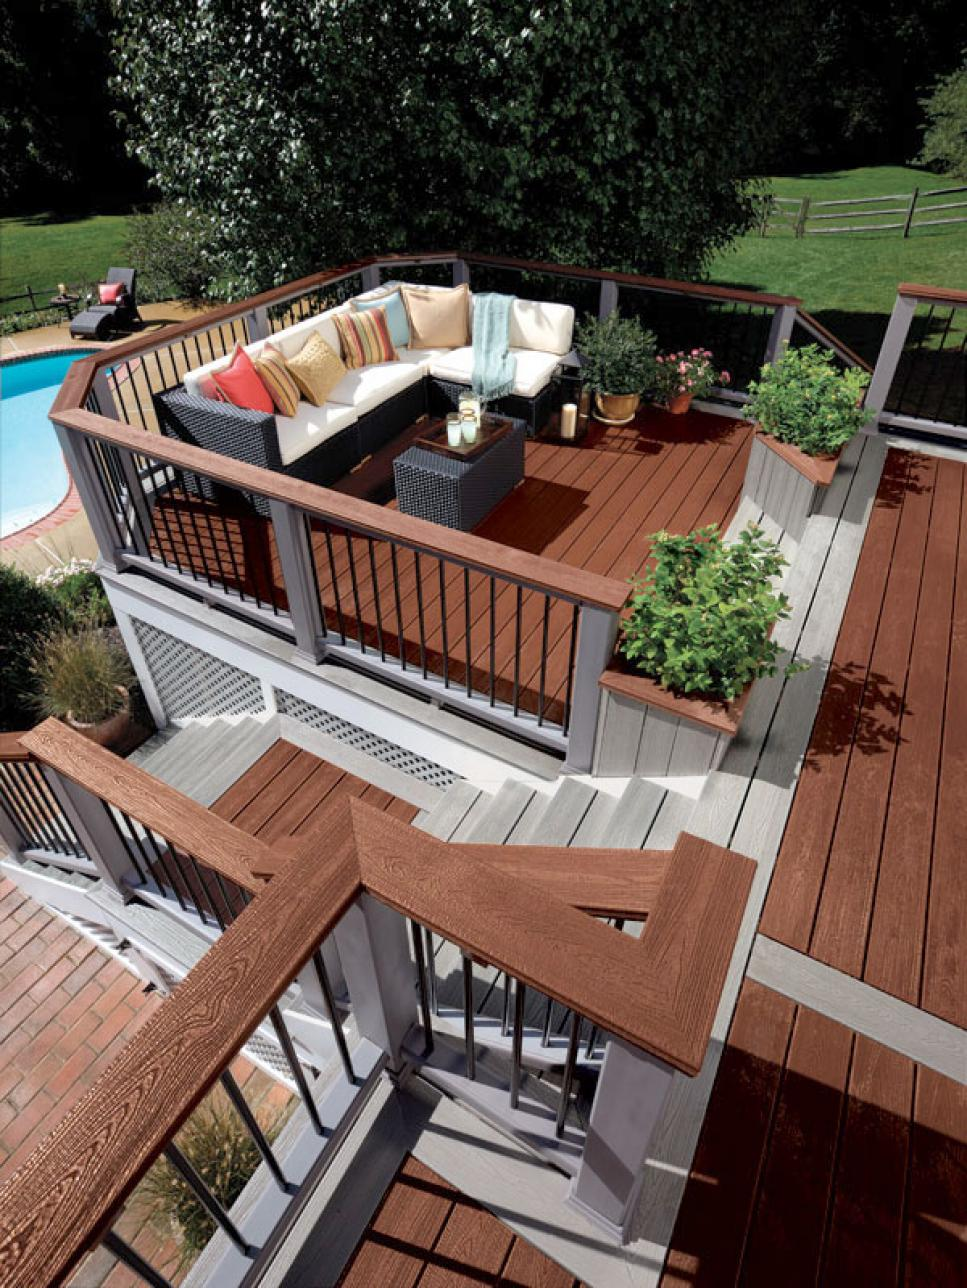 Ideas For Deck Designs latest design for decks with roofs ideas 16 impeccable deck design ideas for the patio that Deck Design Ideas For The Most Suited Deck For Your House